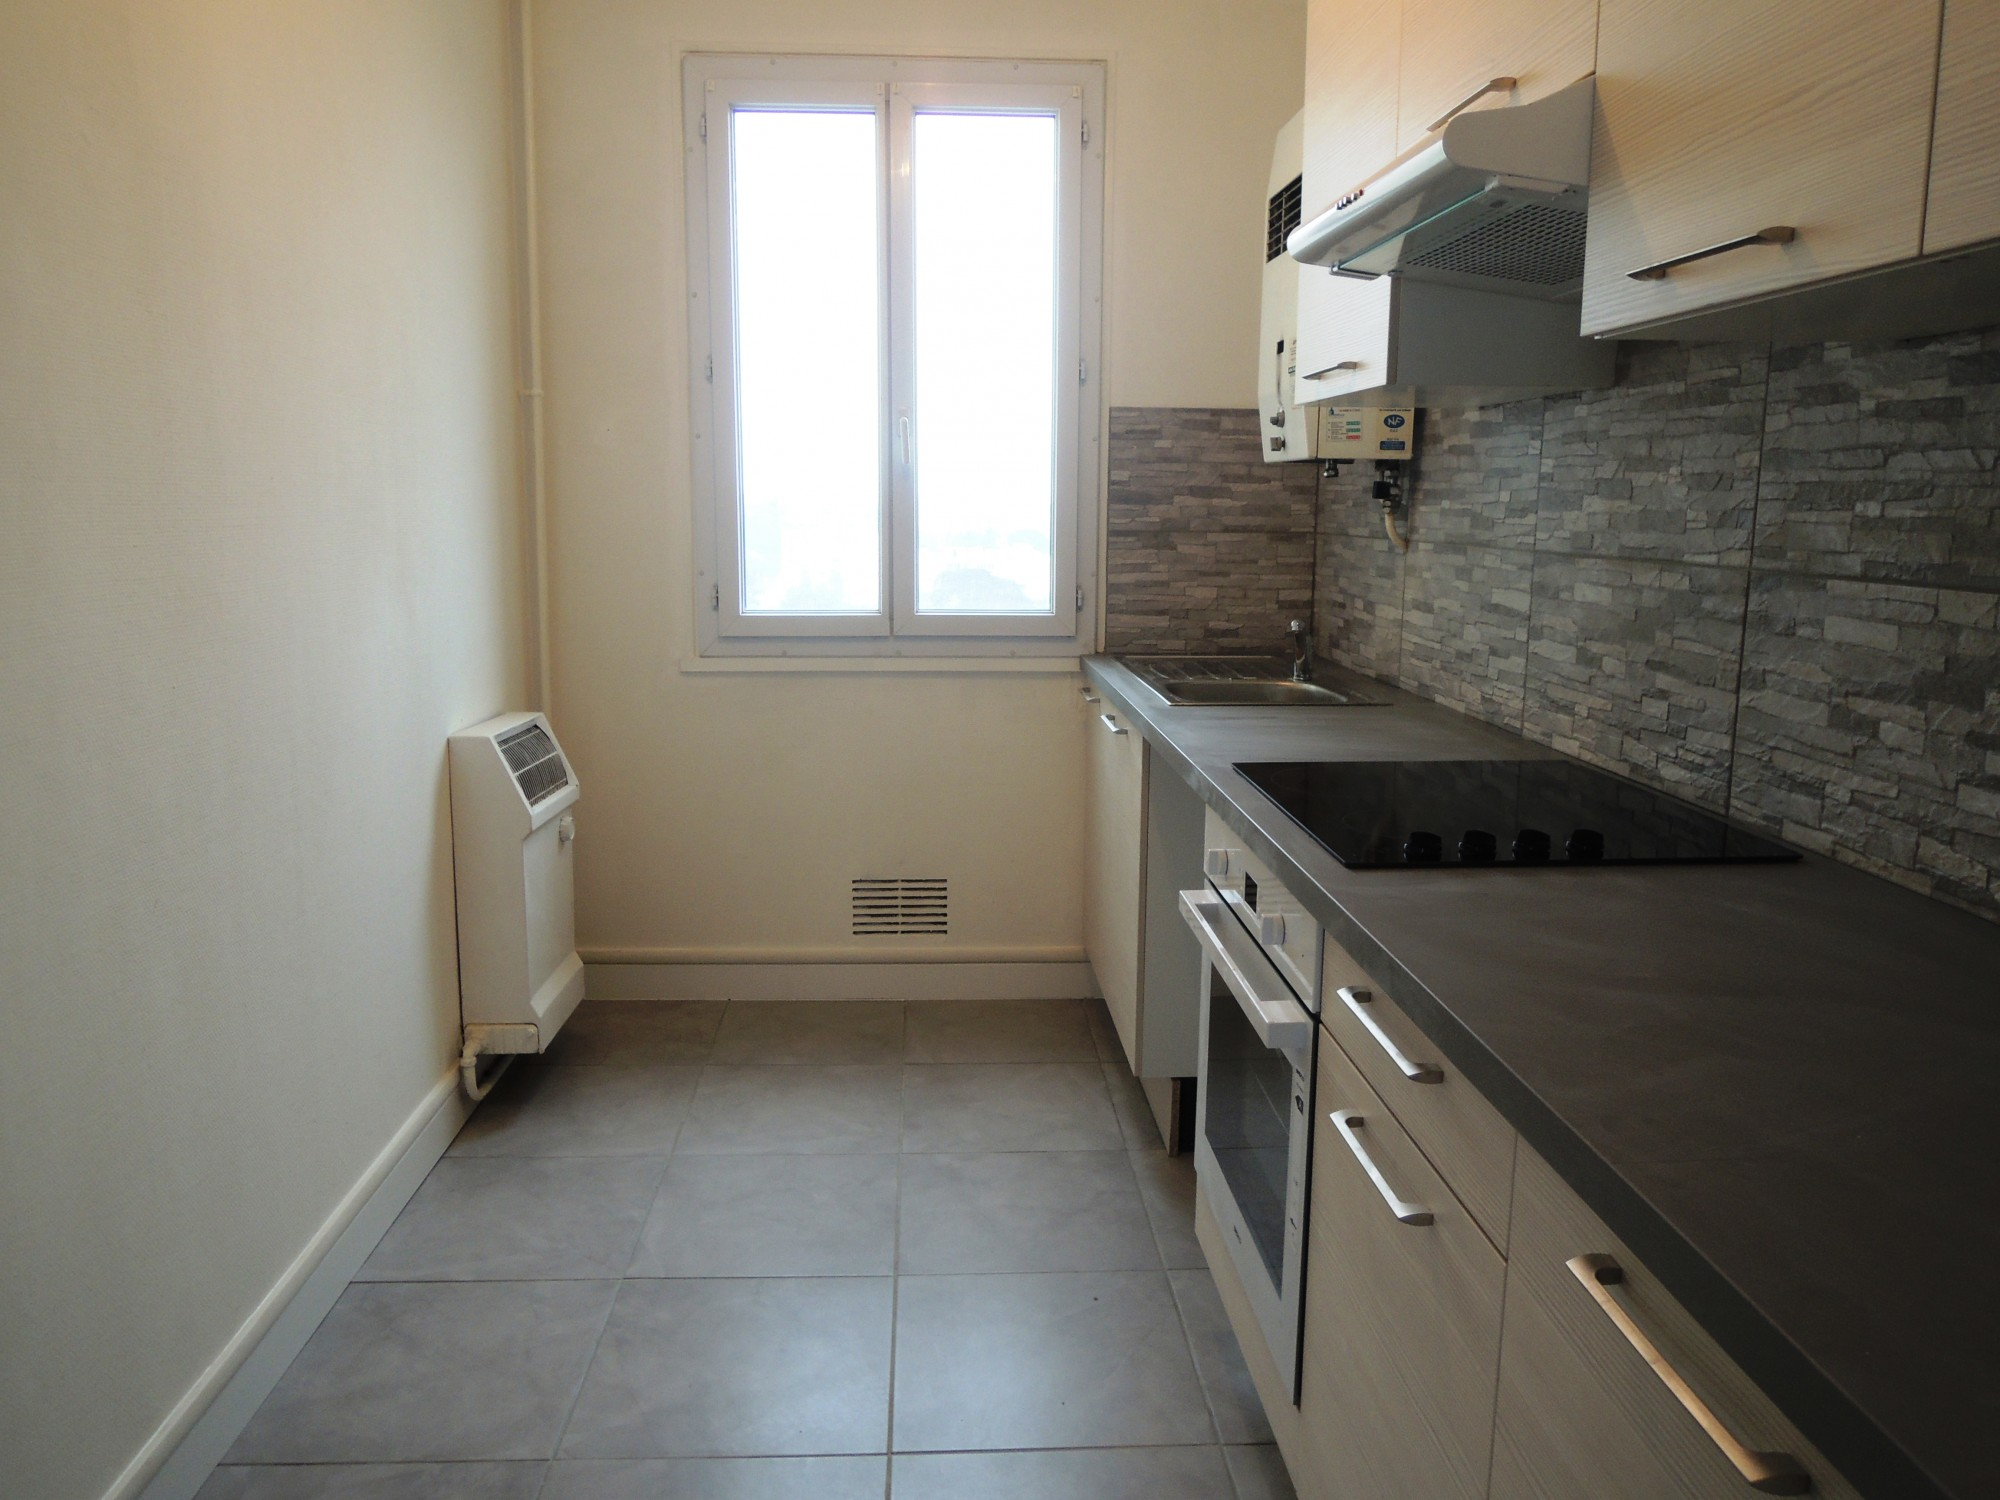 Location appartement t3 f3 bordeaux cauderan bru immobilier for Location appartement bordeaux 40m2